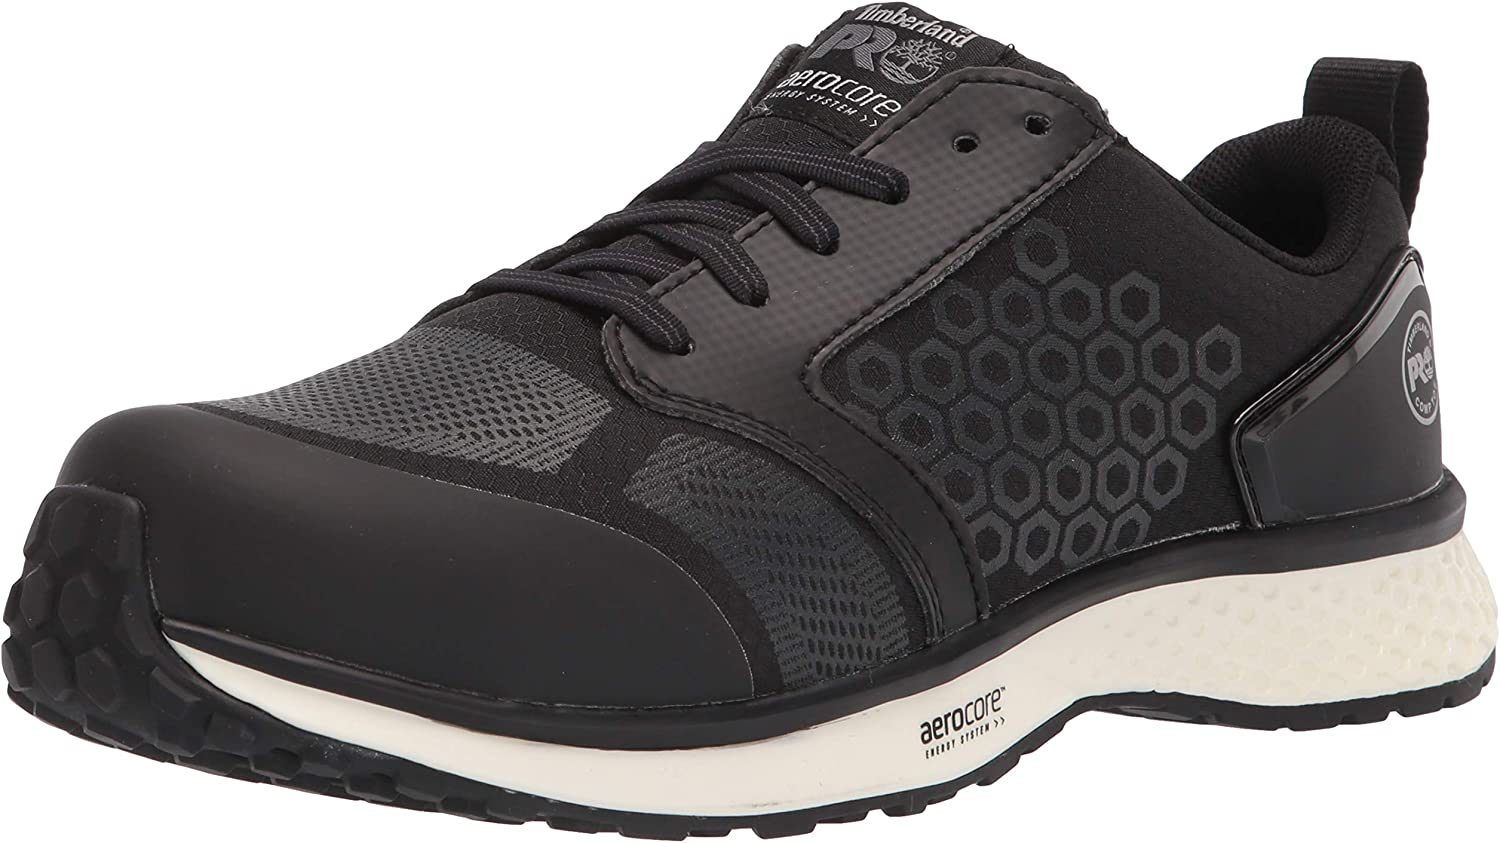 Timberland PRO Women's Reaxion Athletic Composite Toe Industrial Boot, Black/White, 7